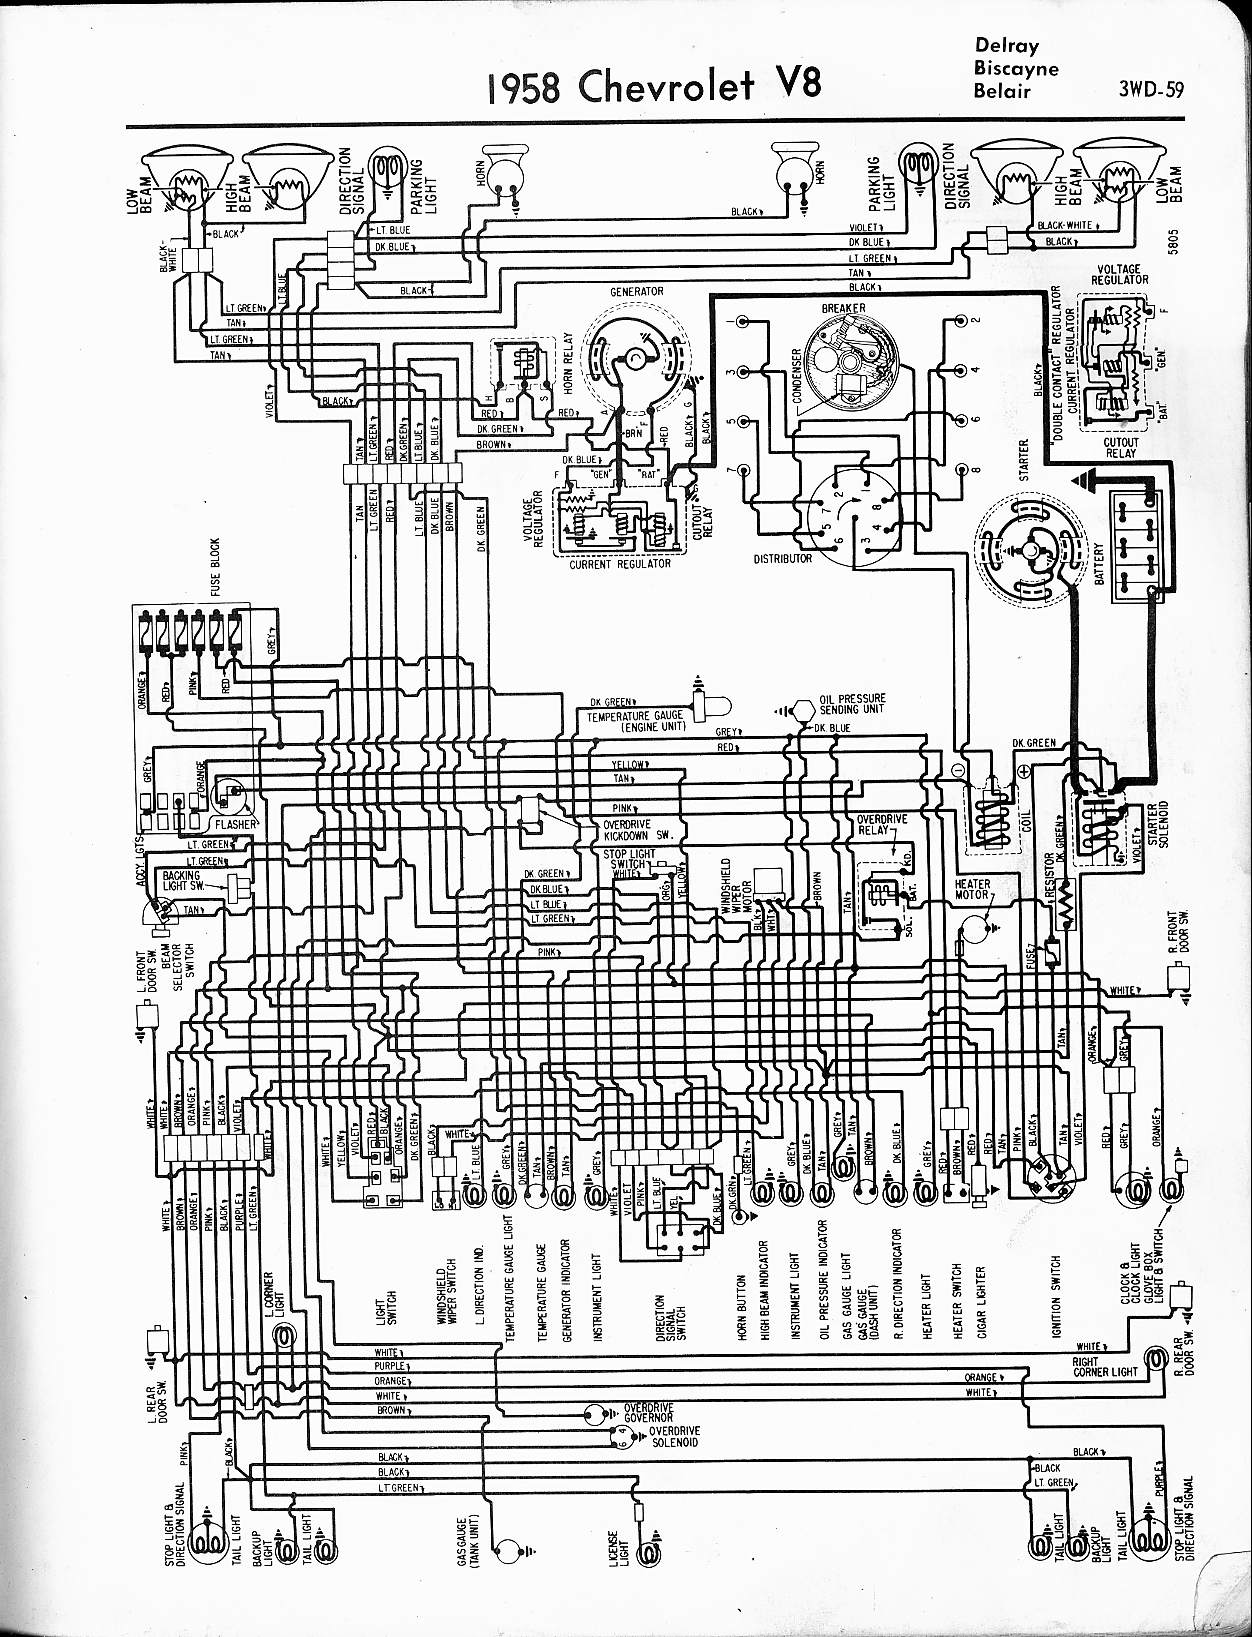 MWireChev58_3WD 059 57 65 chevy wiring diagrams 58 corvette wiring diagram at soozxer.org